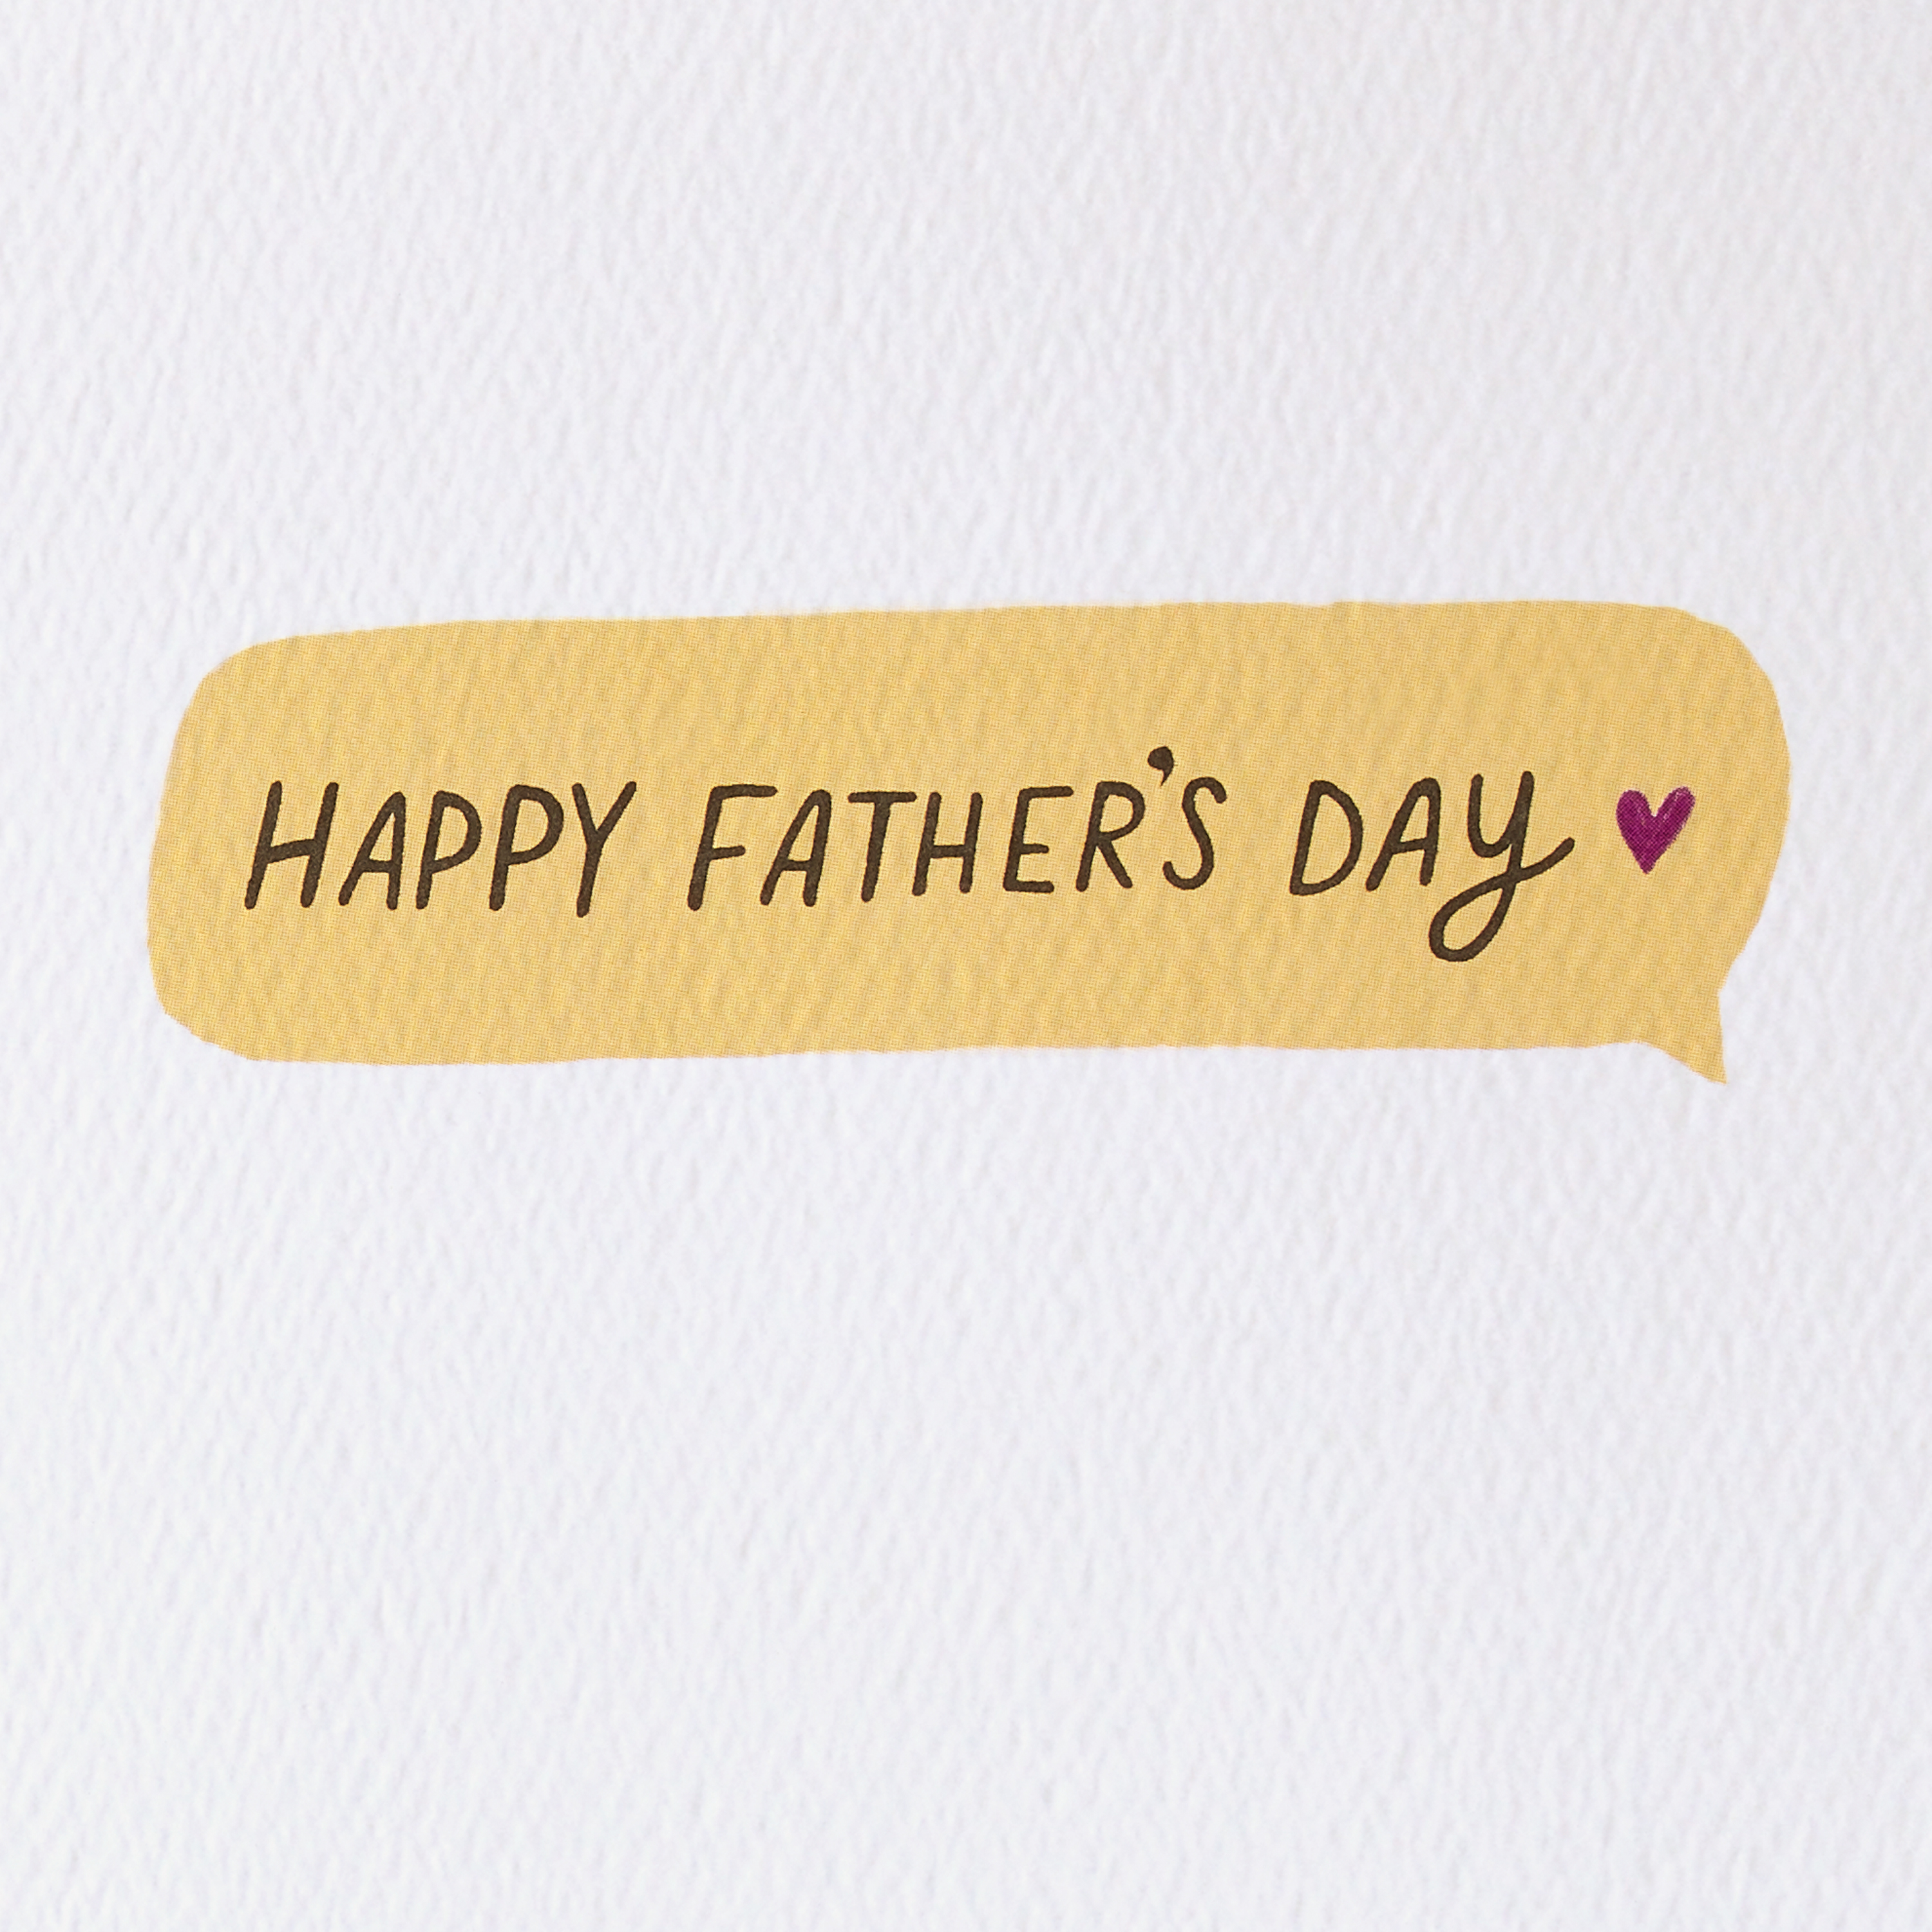 Funny Devices Father's Day Card for Husband image